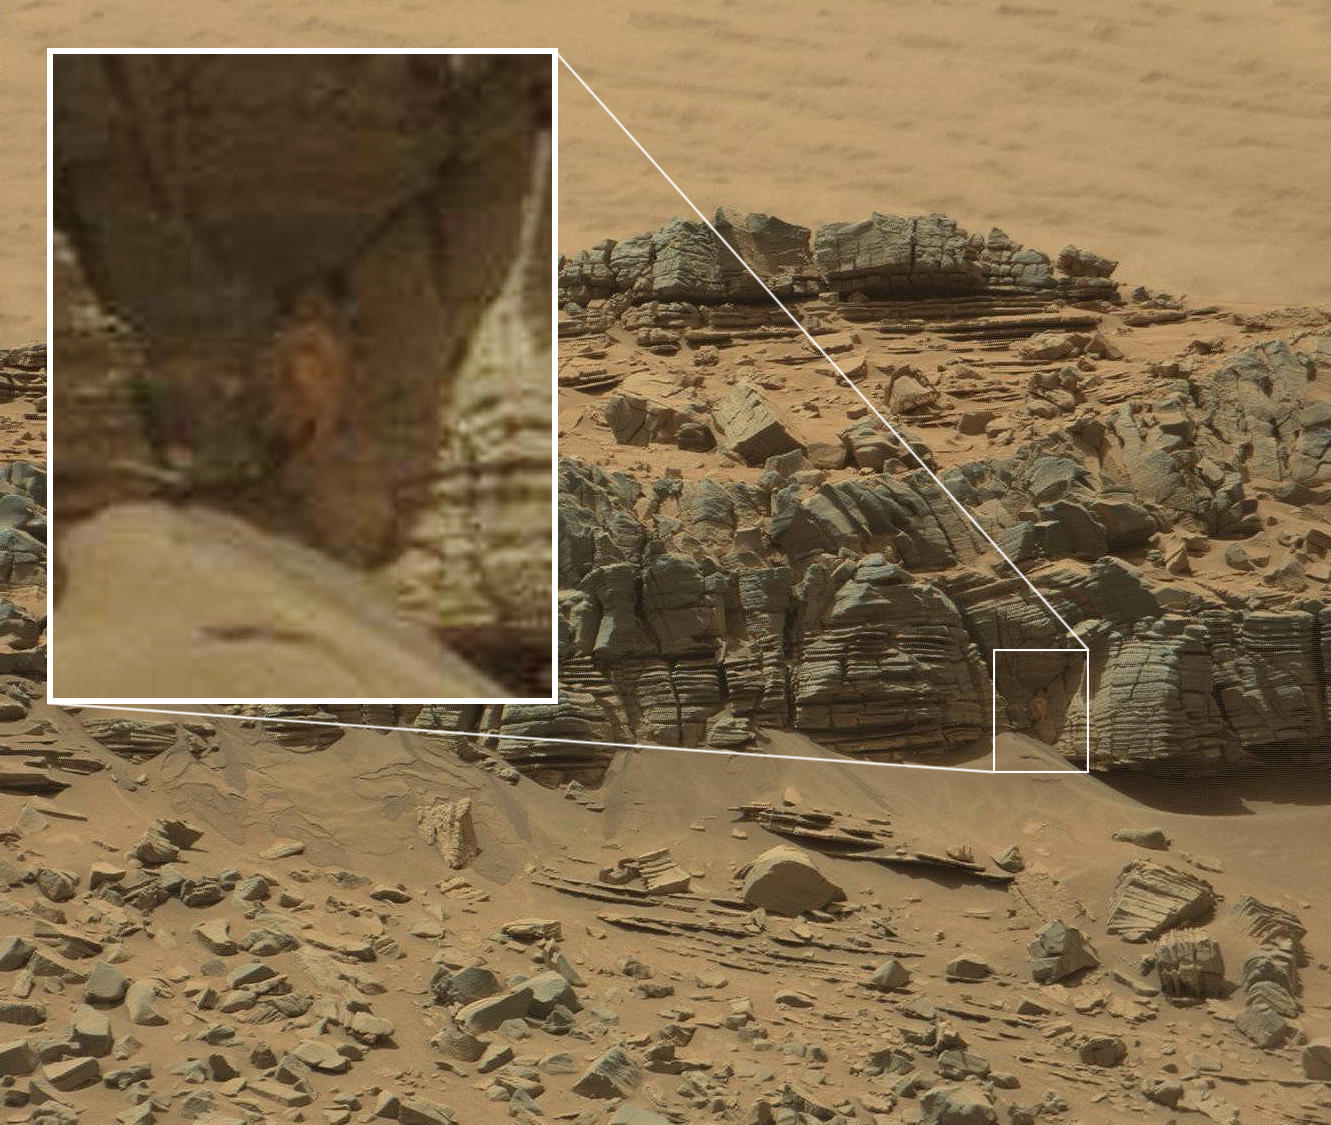 No This Is Not an Alien Cave Crab on Mars